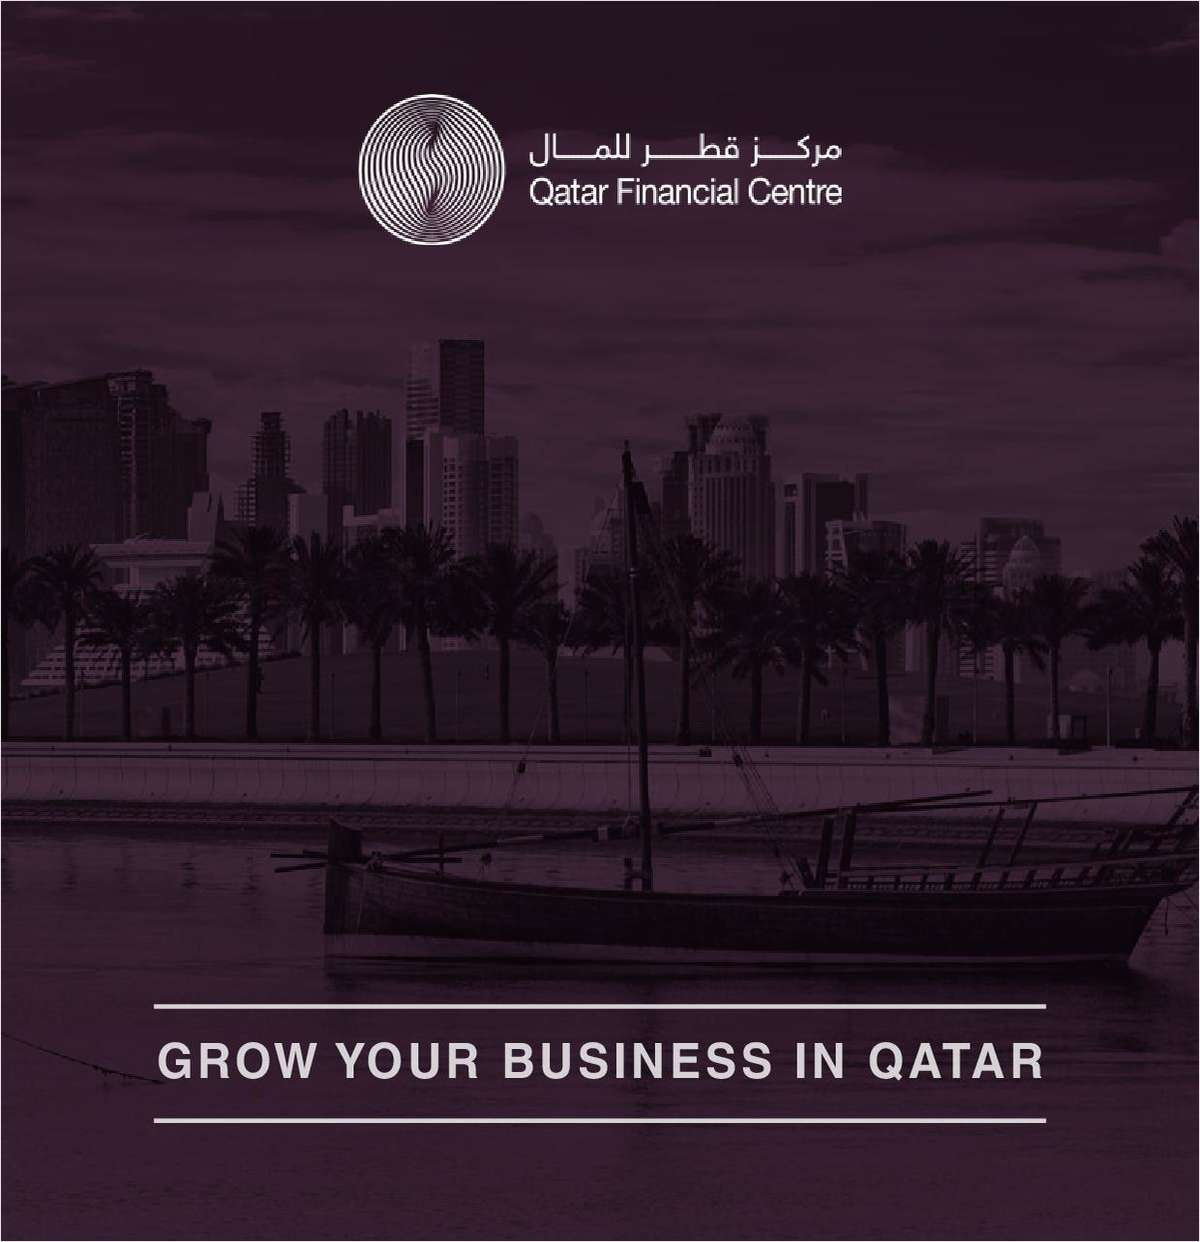 Grow Your Business in Qatar